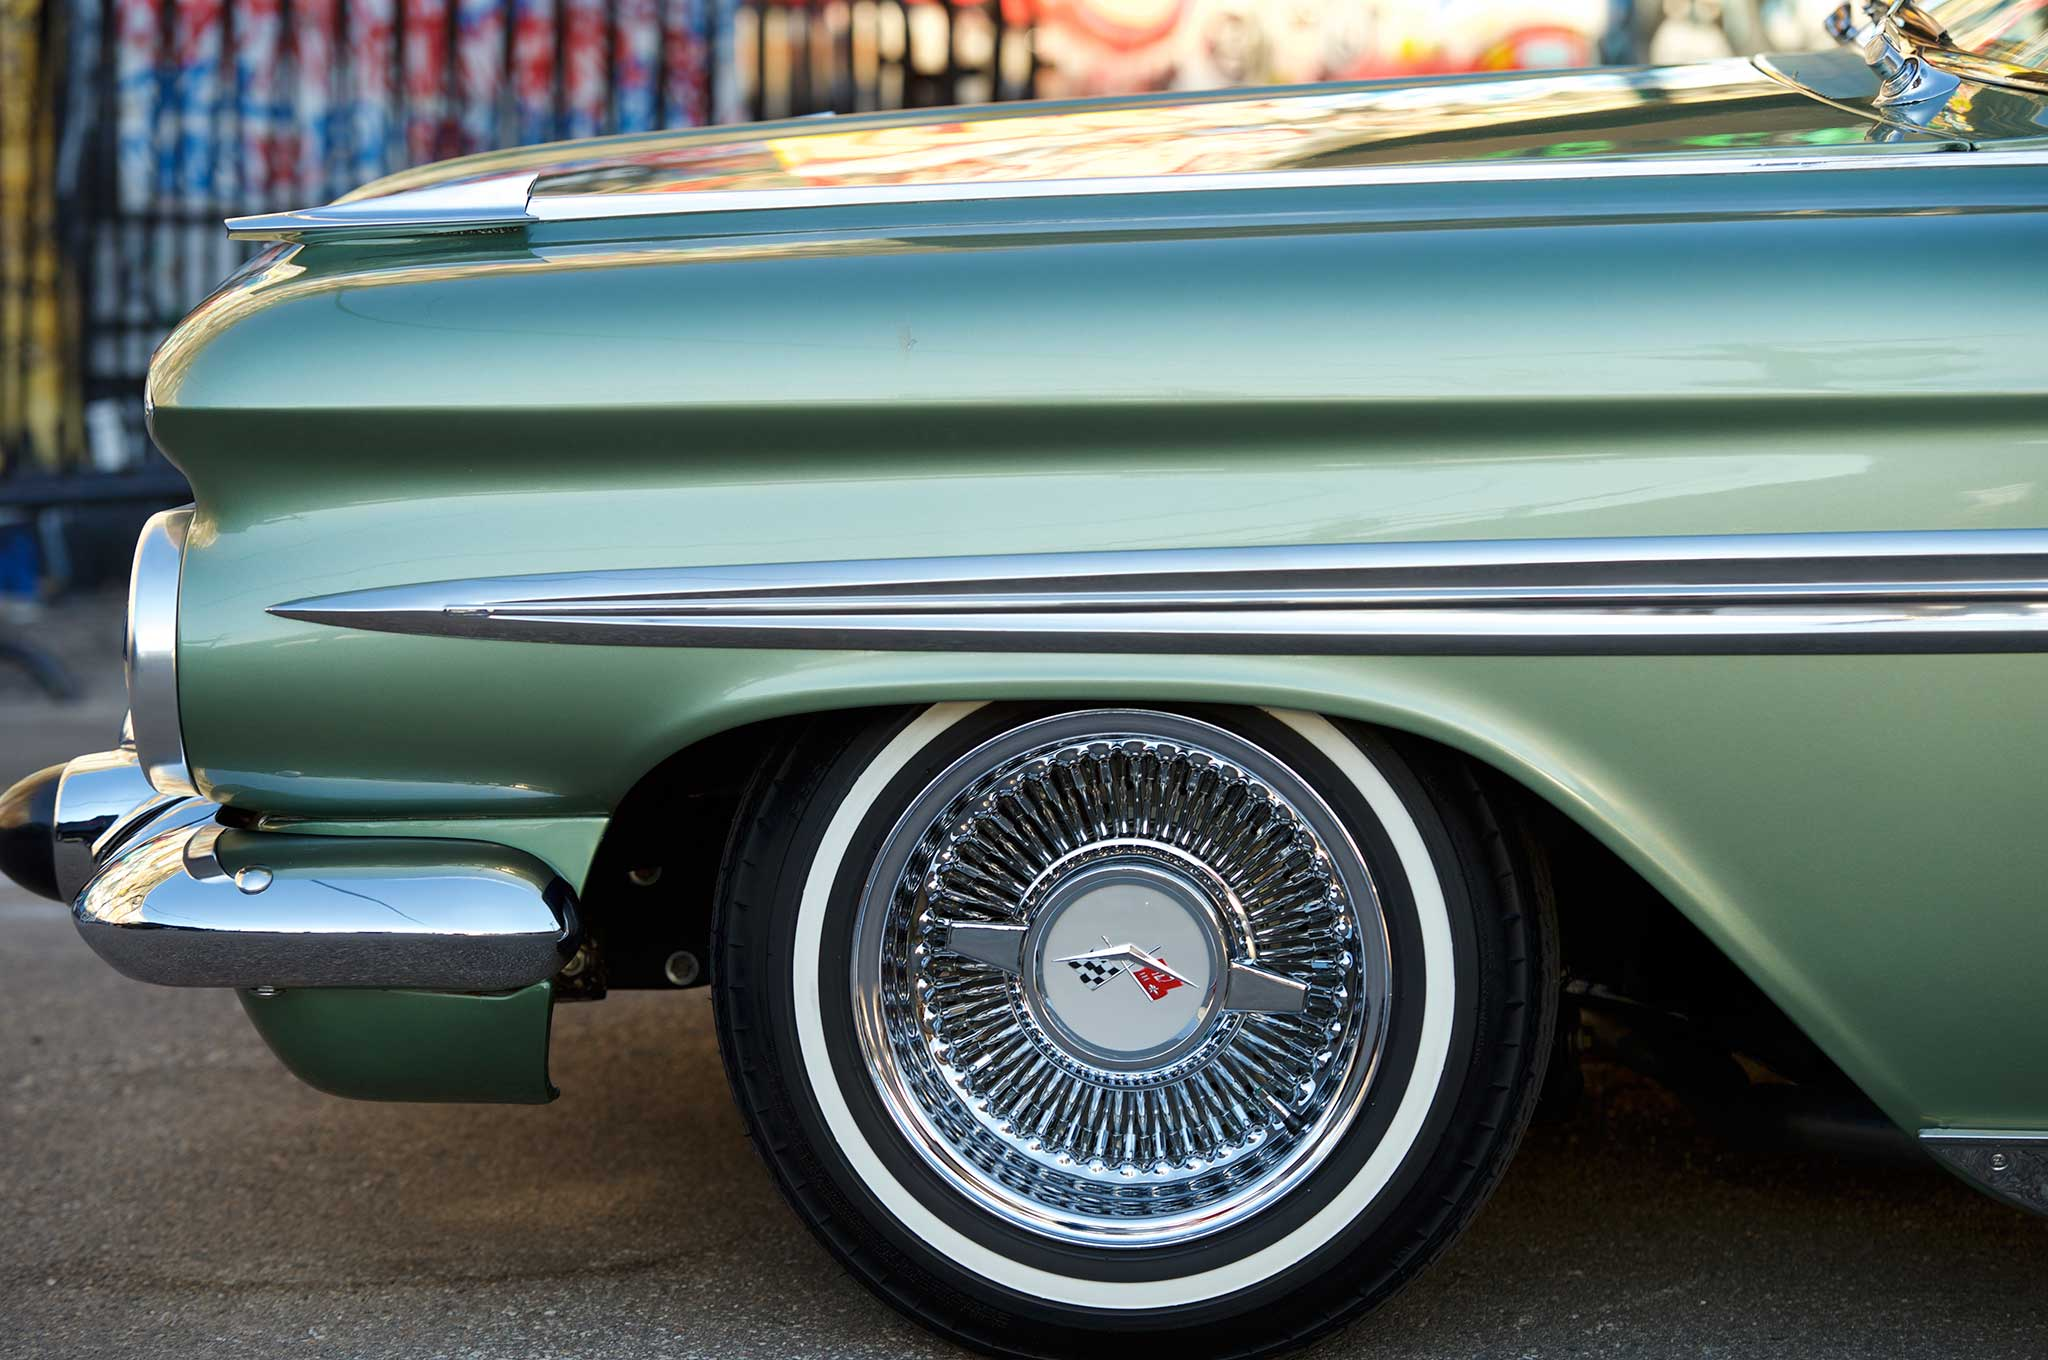 Chicago Man Fulfills his Dream of Owning a '59 Chevy Impala